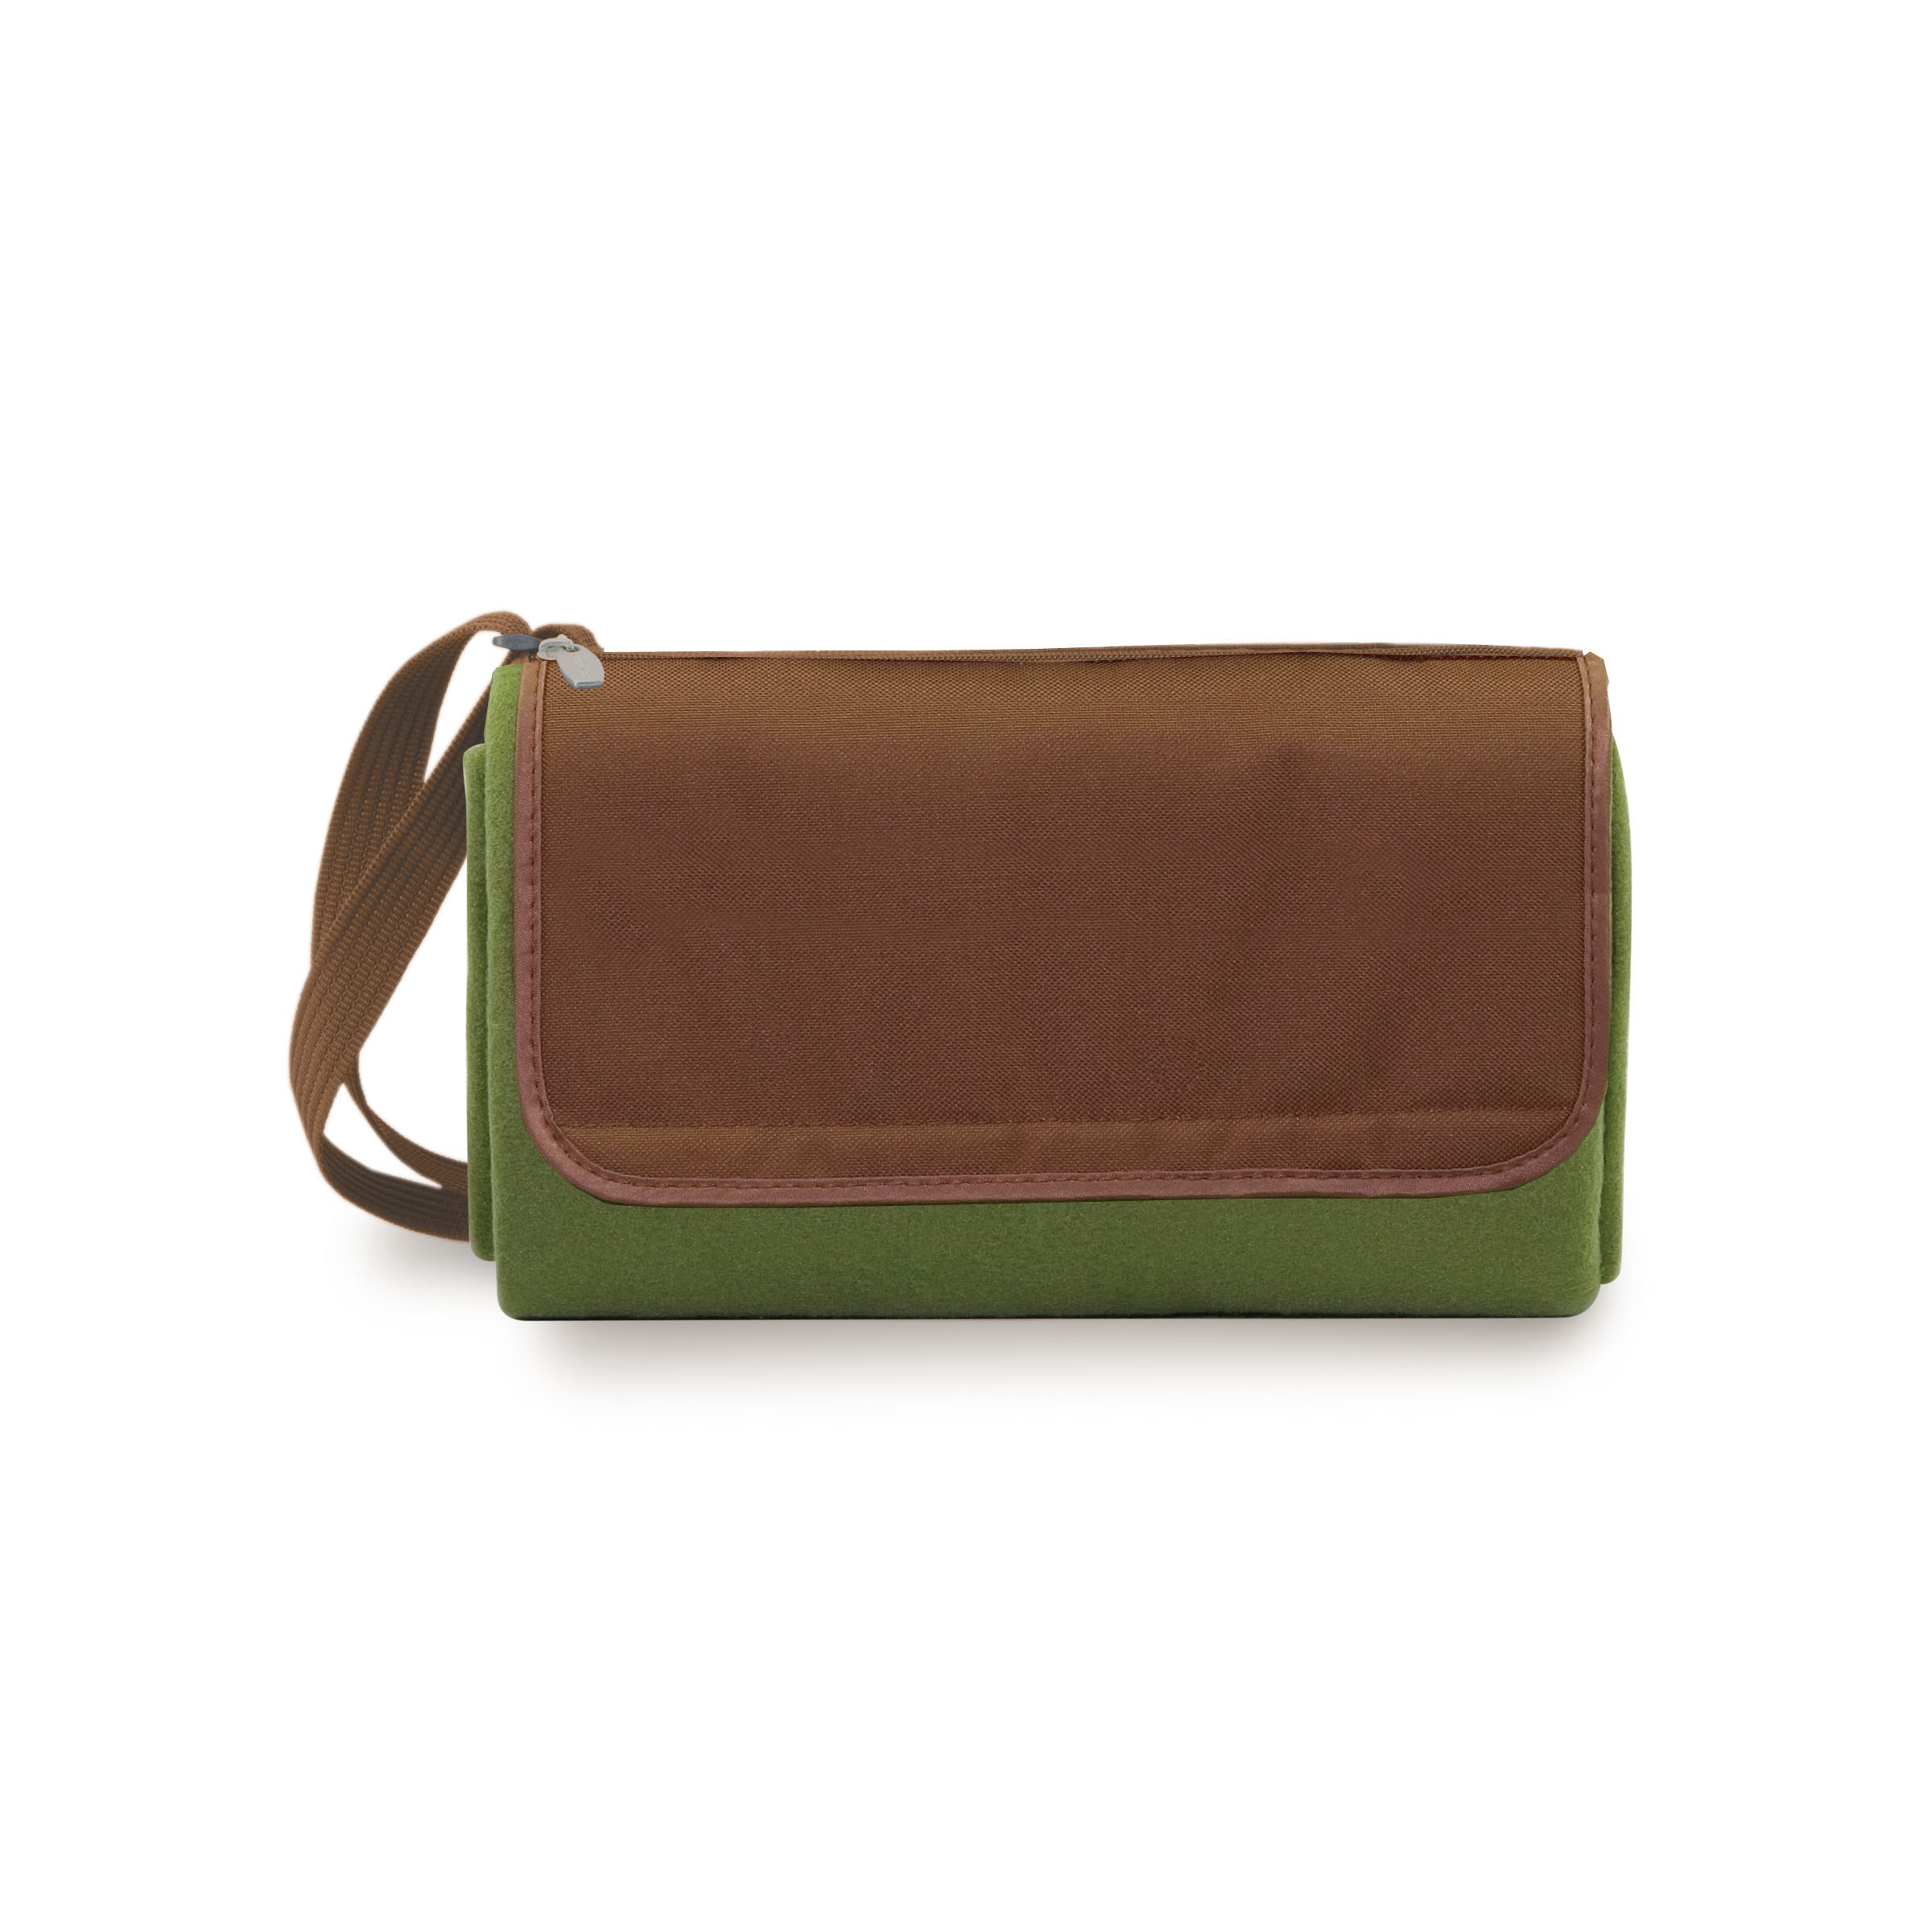 Blanket Tote Pine Green/brown